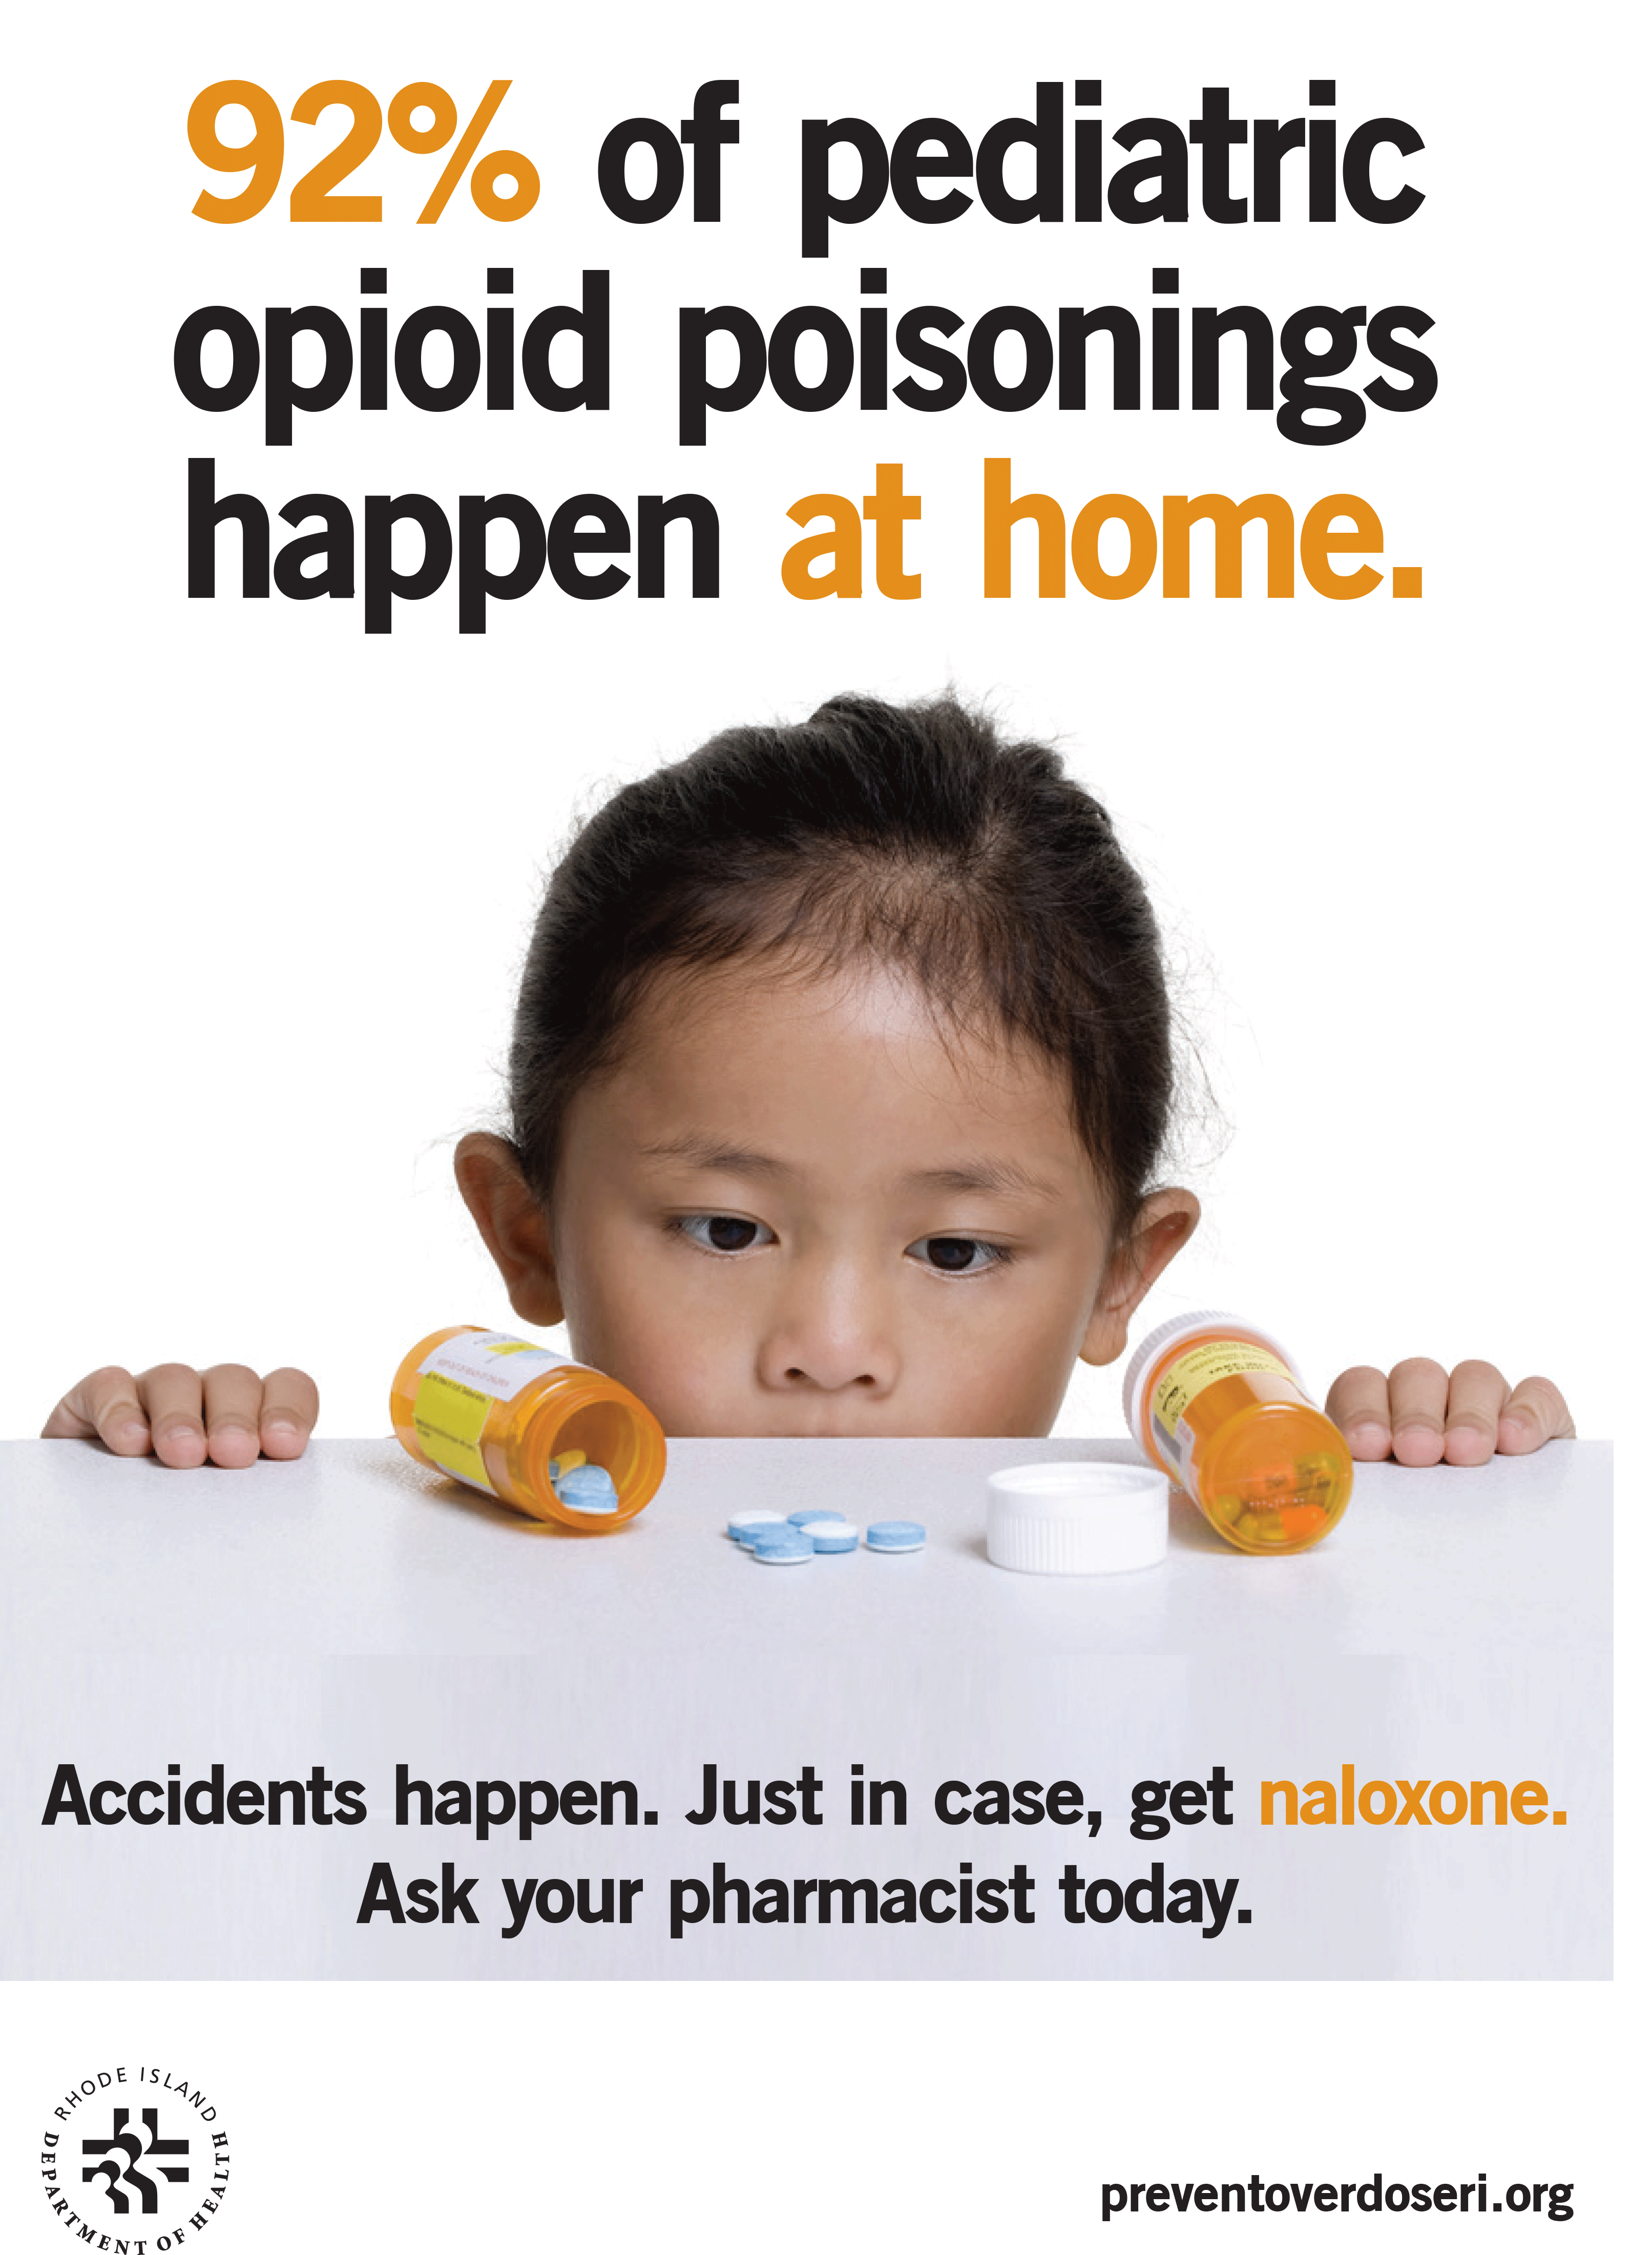 92 percent of pediatric opioid poisonings happen at home